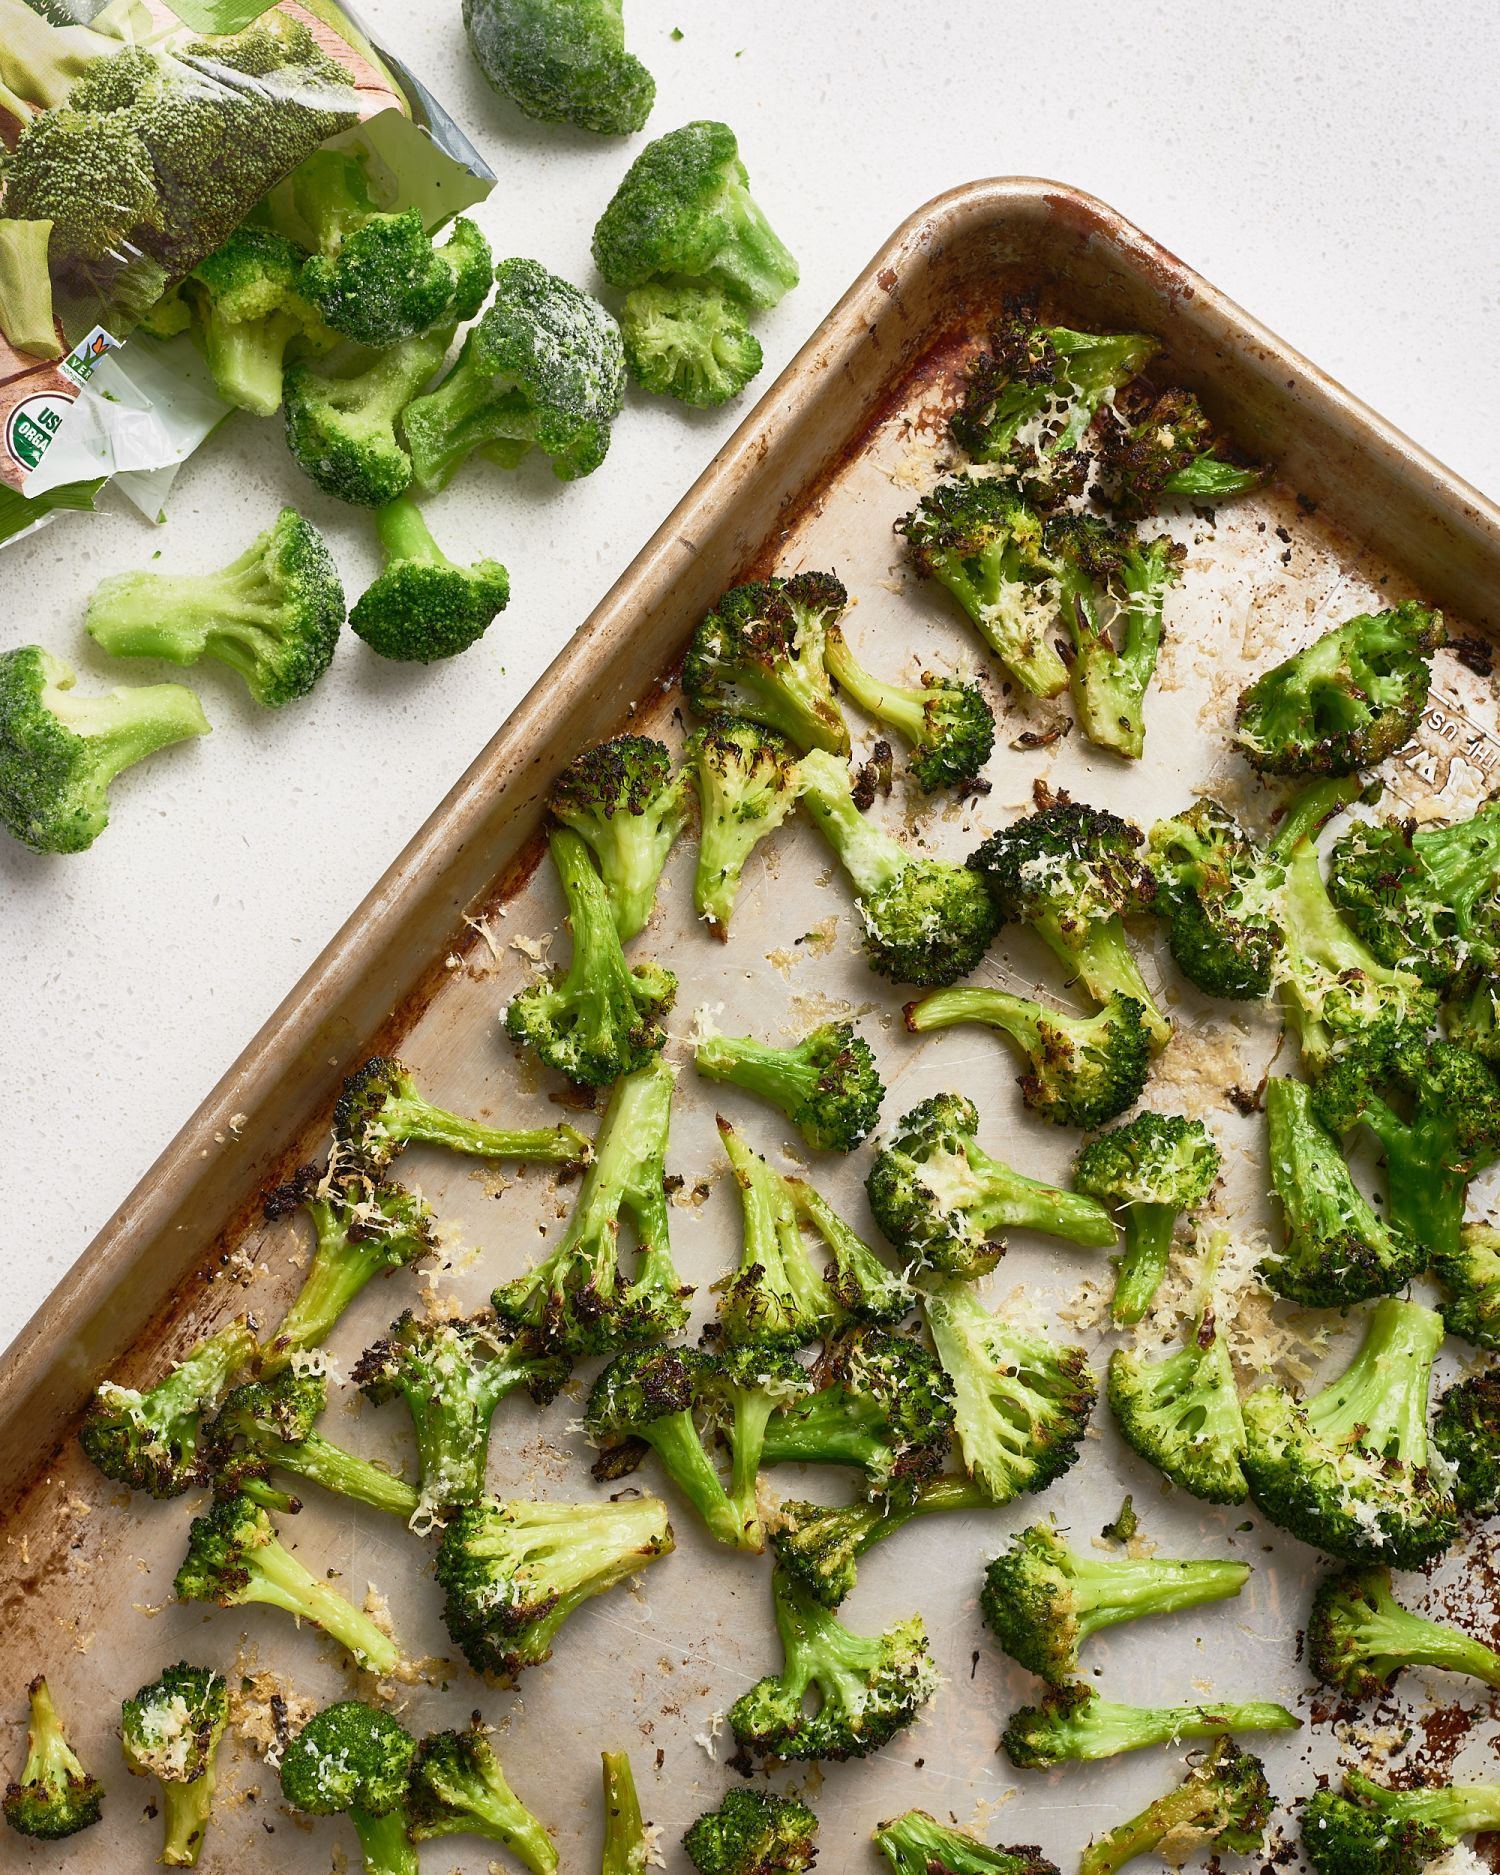 Cooking Frozen Veggies? Don't Make These Major Mistakes.